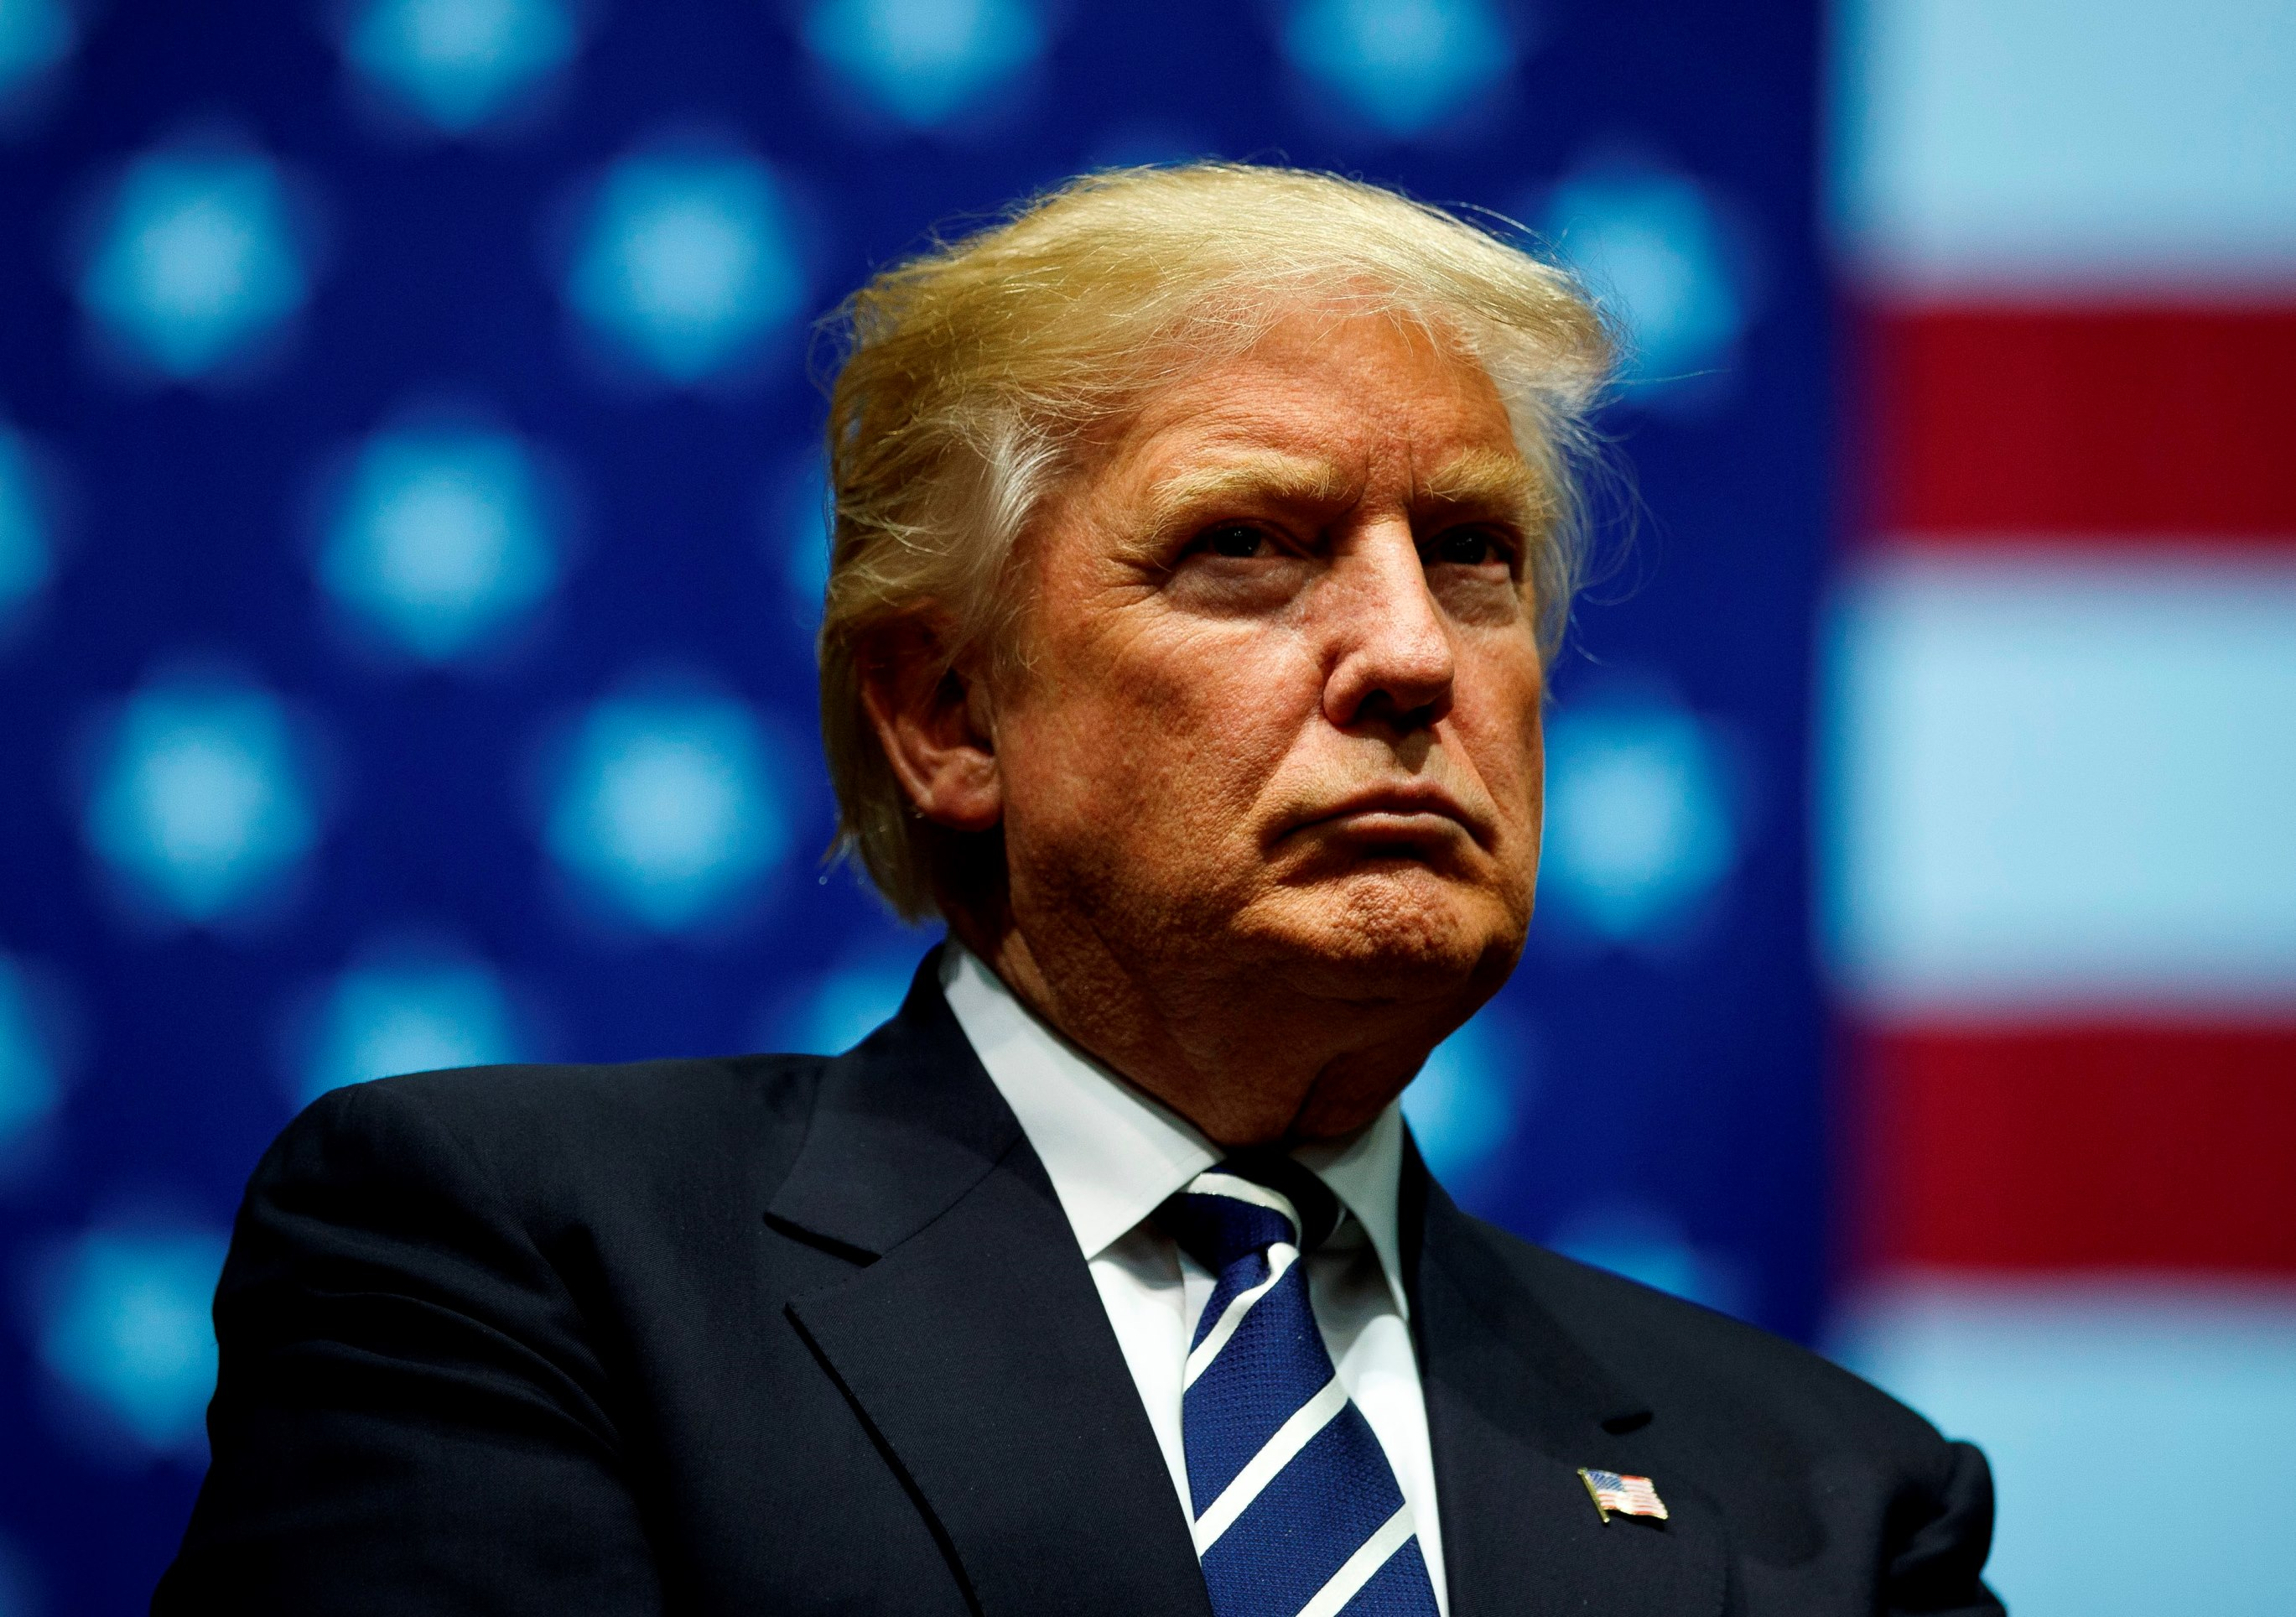 President Trump's re-election chances in 2020 could depend on when the next economic recession arrives. (Getty Images)